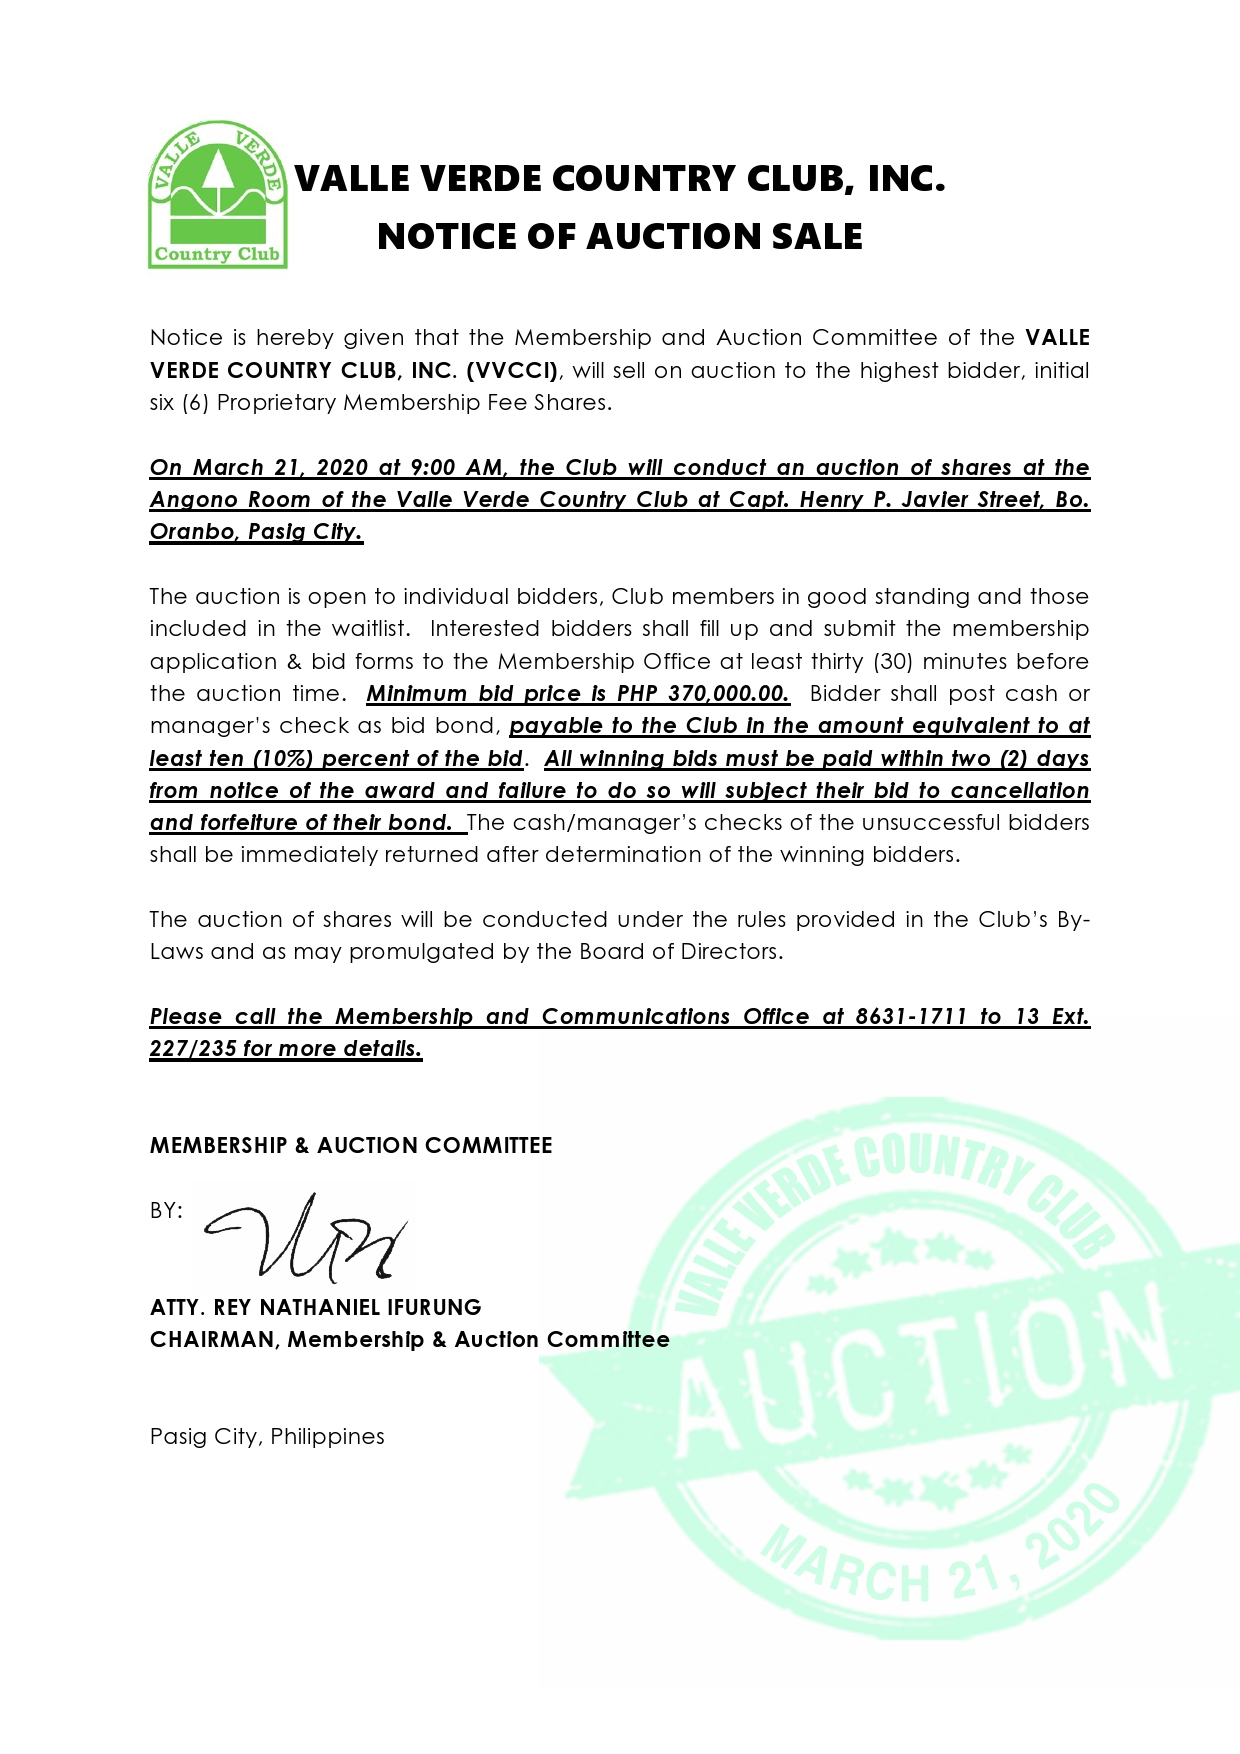 NOTICE OF AUCTION SALE 9